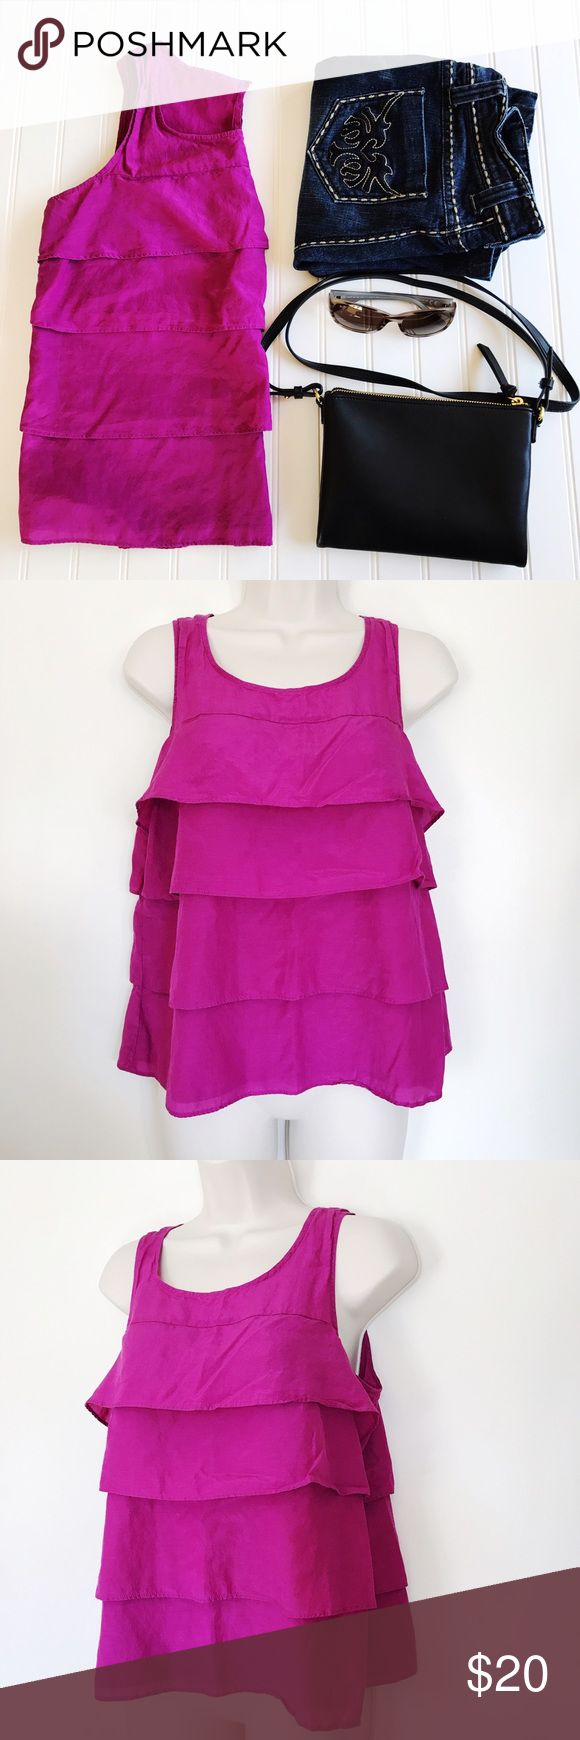 "Ann Taylor purple ruffle sleeveless blouse Ann Taylor purple ruffle blouse.  This is a very versatile piece.  Can be paired with a pencil skirt or nice trousers and some heels for the office or some skinny jeans for a night out!  No rips or stains.  There is a small pull in the fabric on the back under the right shoulder blade which you can really only see when holding it up to the light.   Material  52% Silk 48% Cotton   Measurements Bust: 18""  Waist: N/A Length: 21""  Offers welcome! No…"